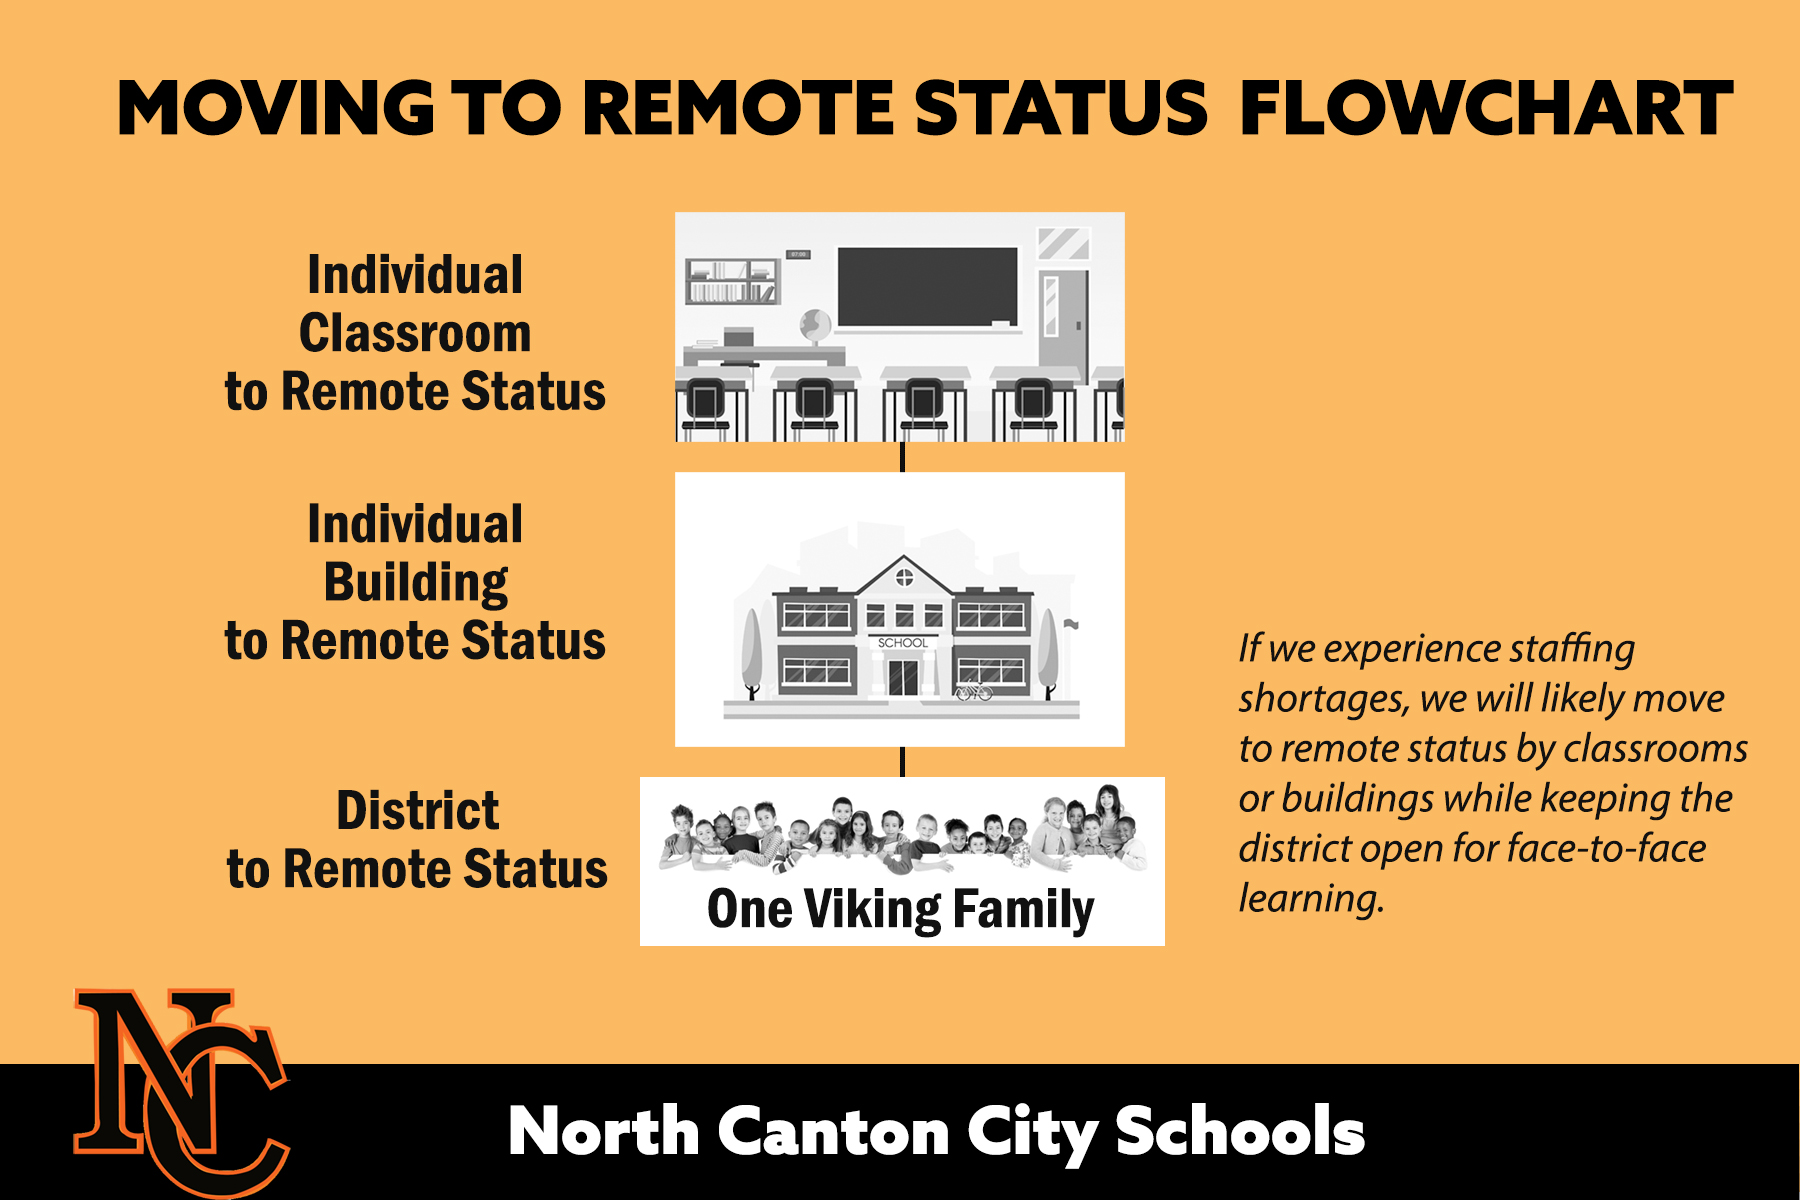 boxes that show how district will move from classrooms to buildings to district if the need arises